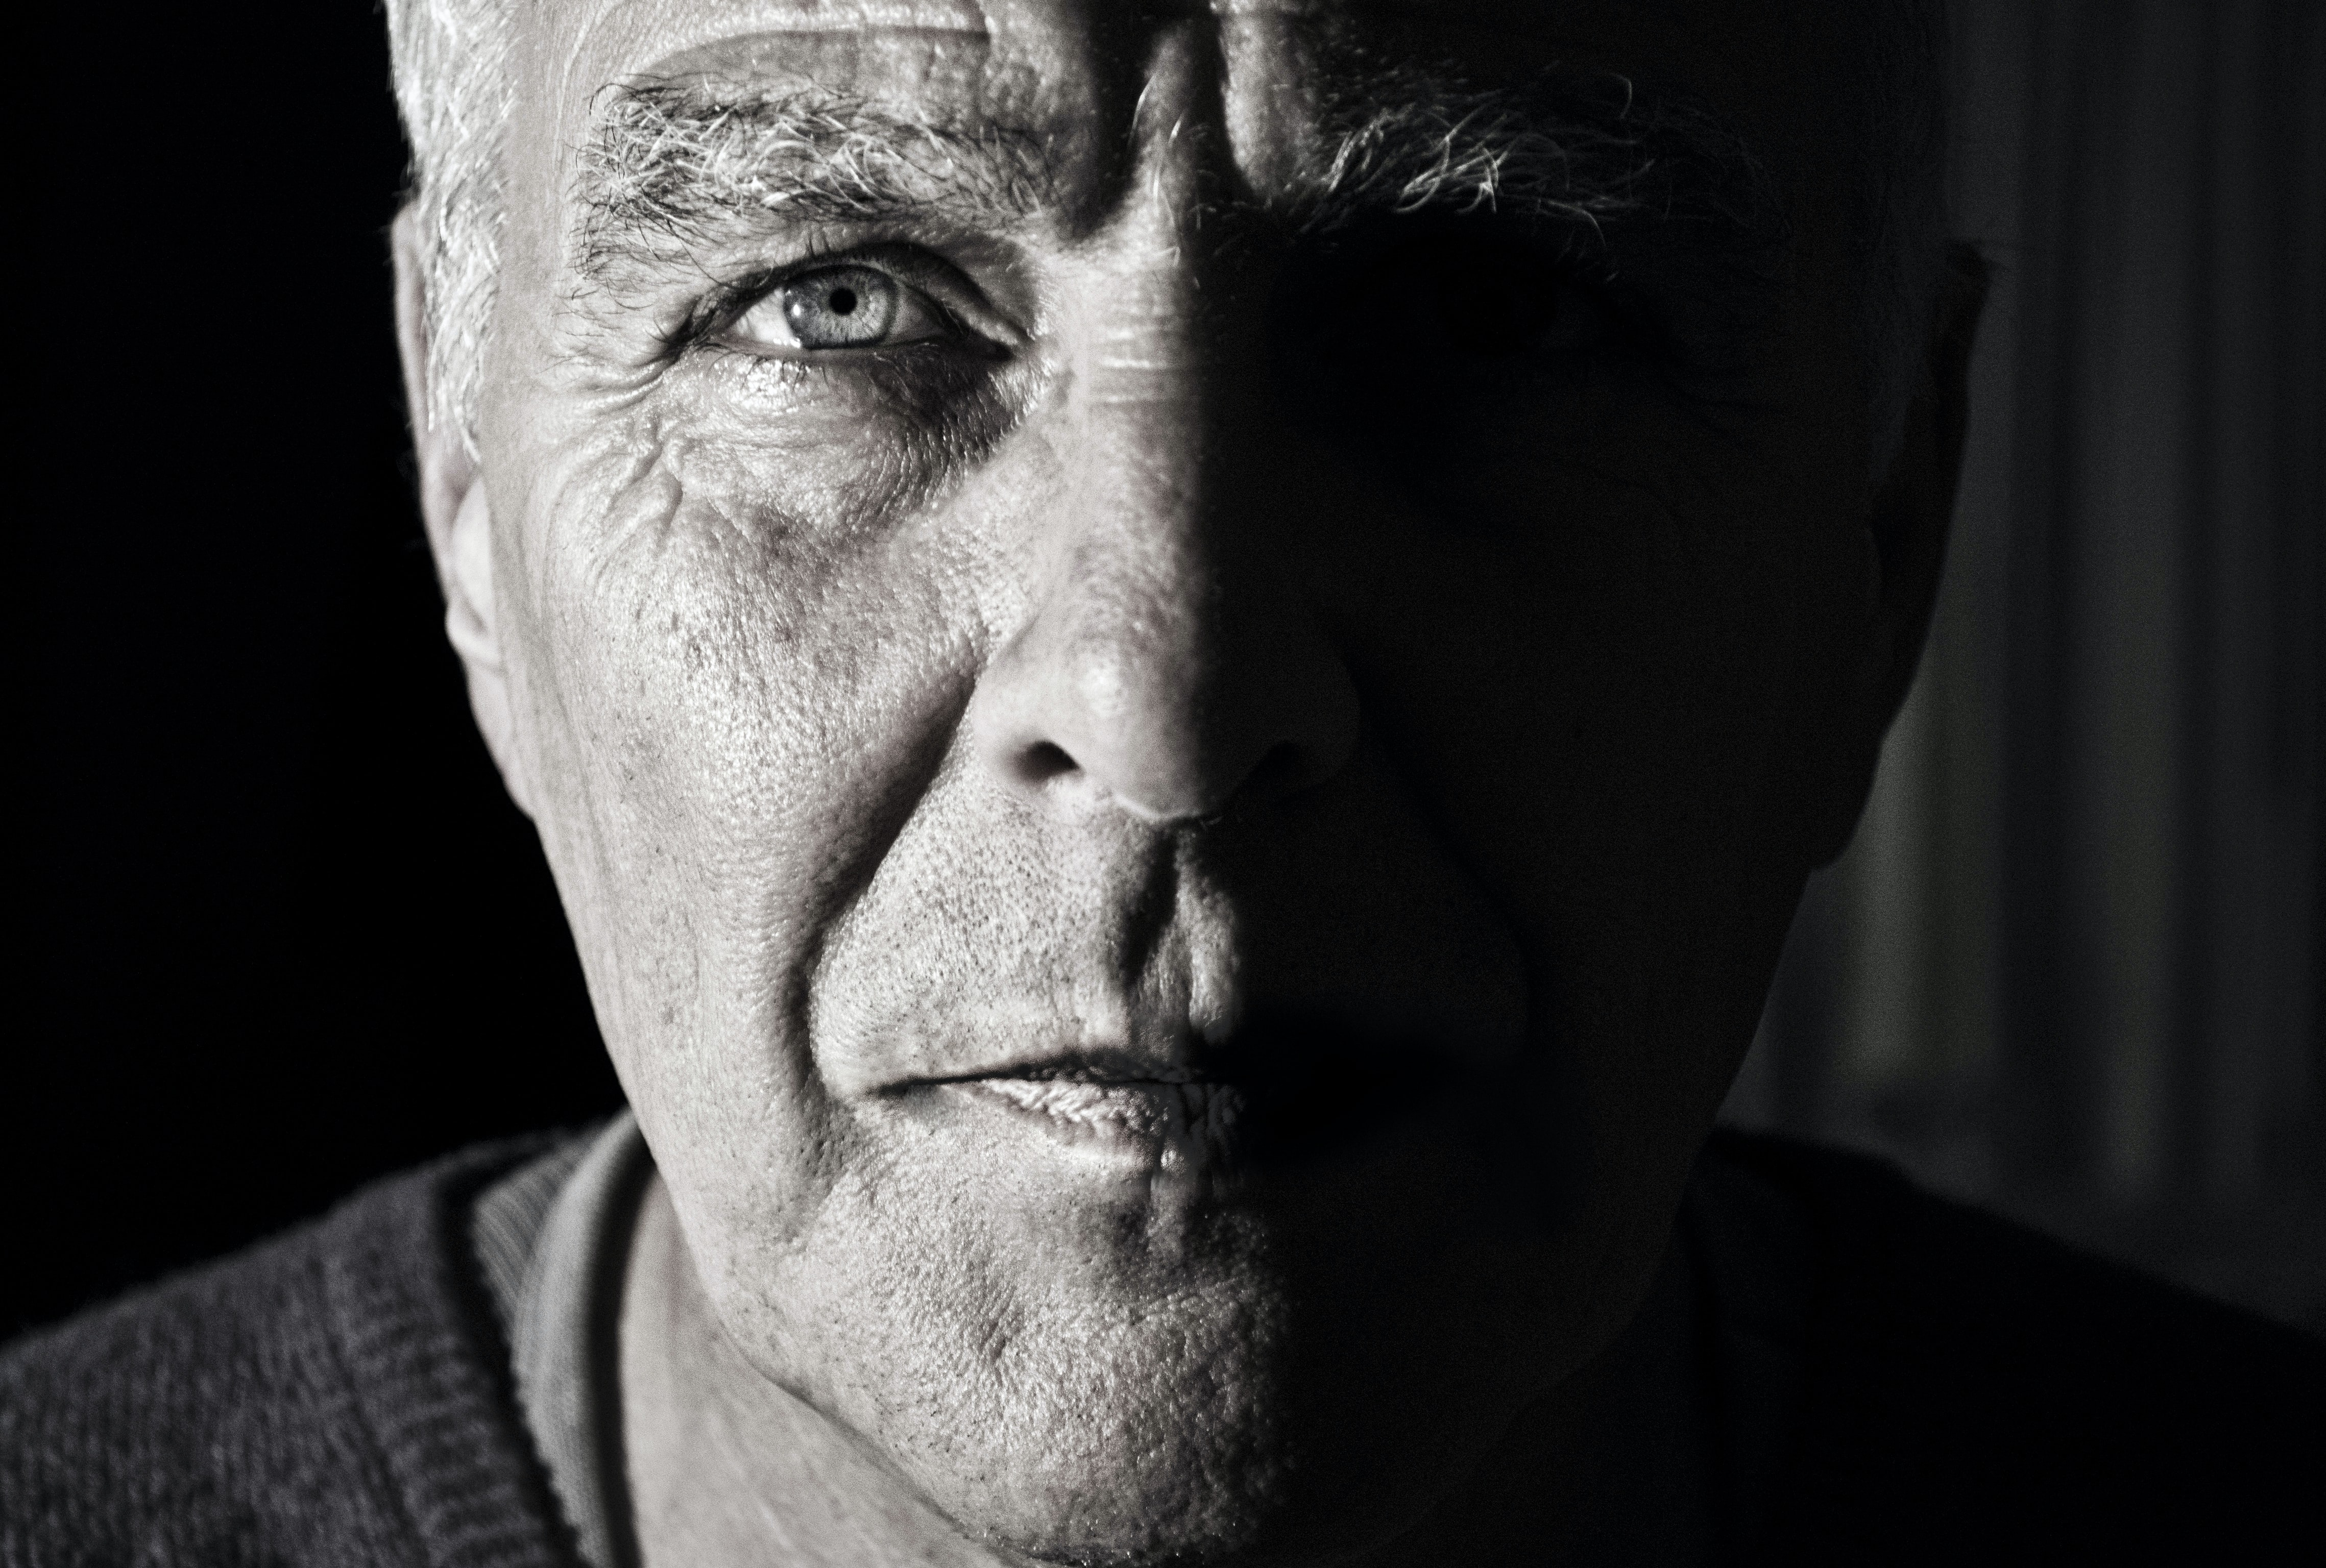 The macro view of the face of an old man with wrinkle face in Venray